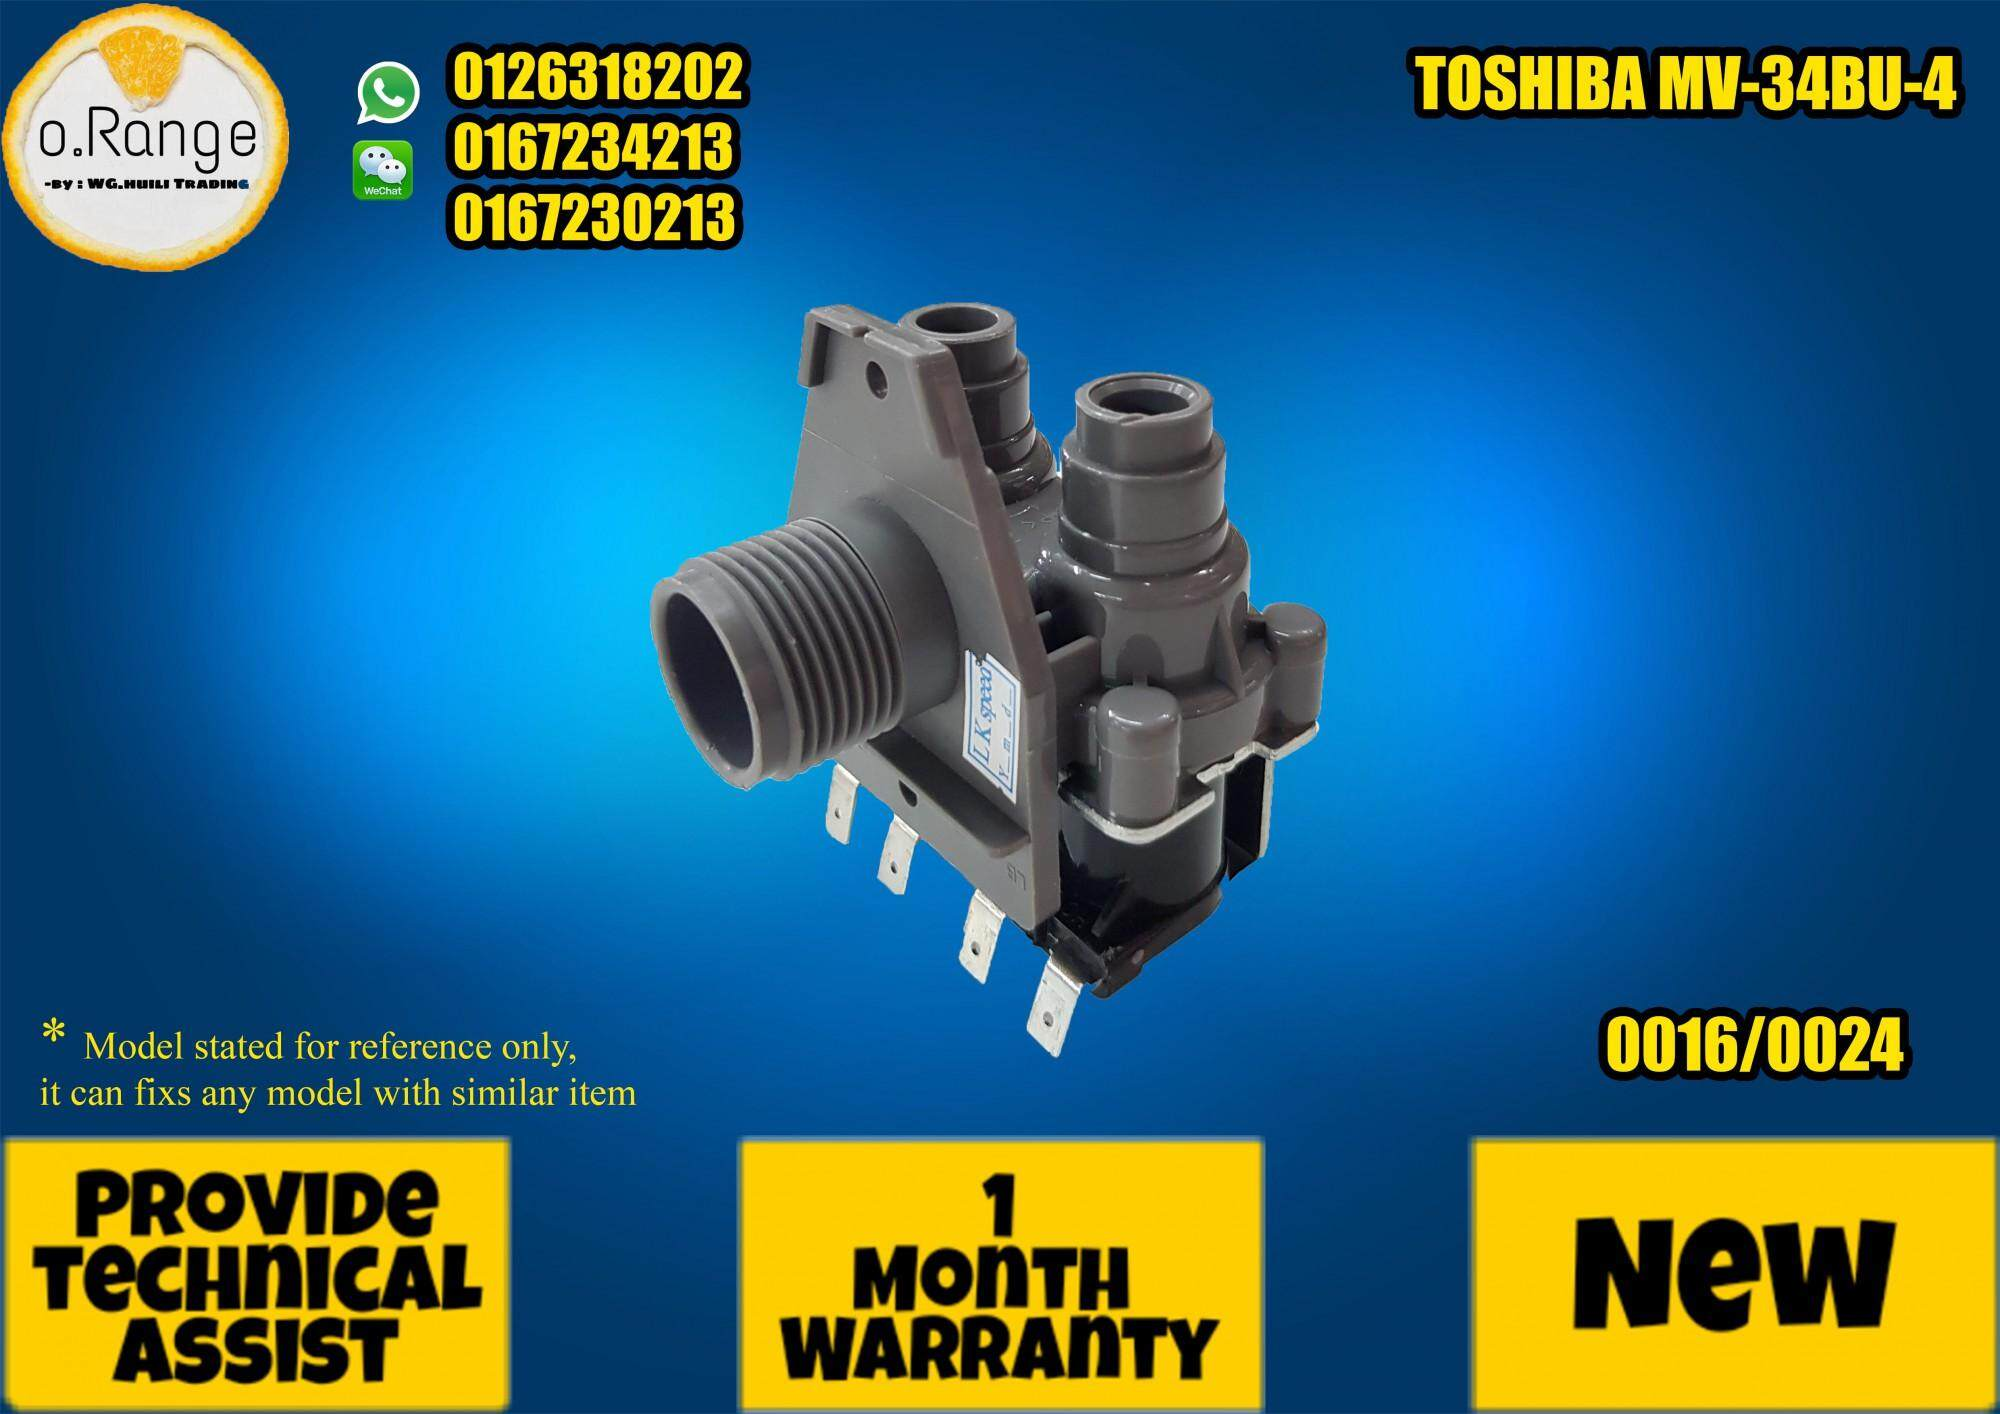 Toshiba Washer Dryer Accessories Price In Malaysia Best Car Stereo Wiring Diagram Washing Machine Water Inlet Vavle